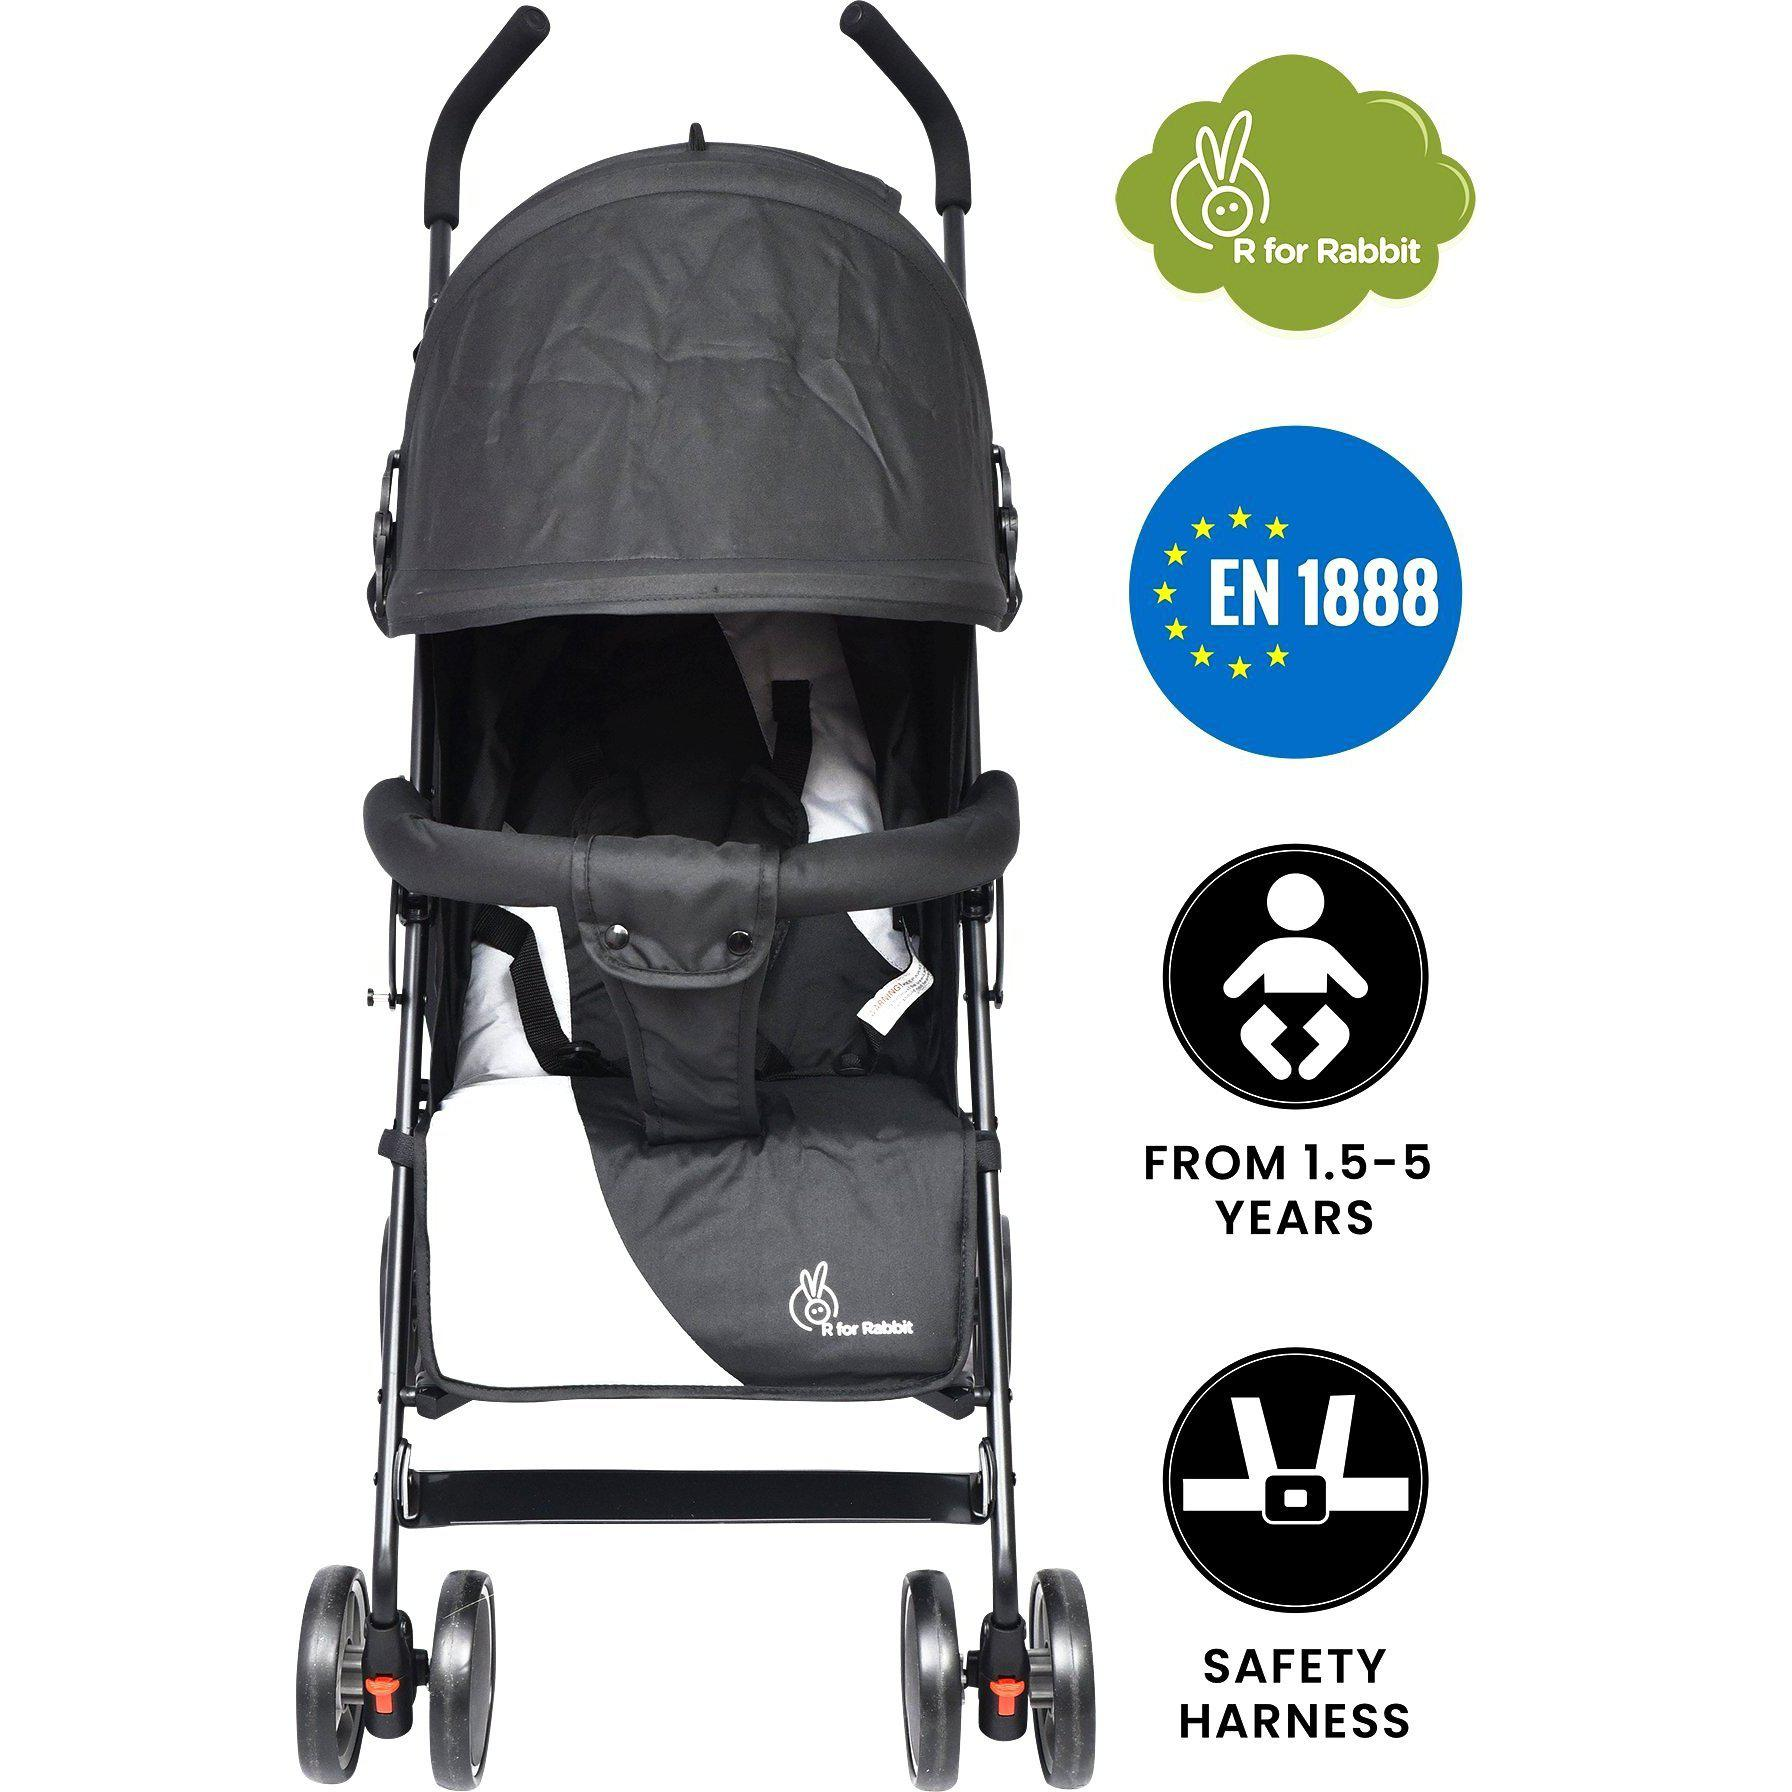 R for Rabbit Twinkle Twinkle -Compact Folding Baby Stroller